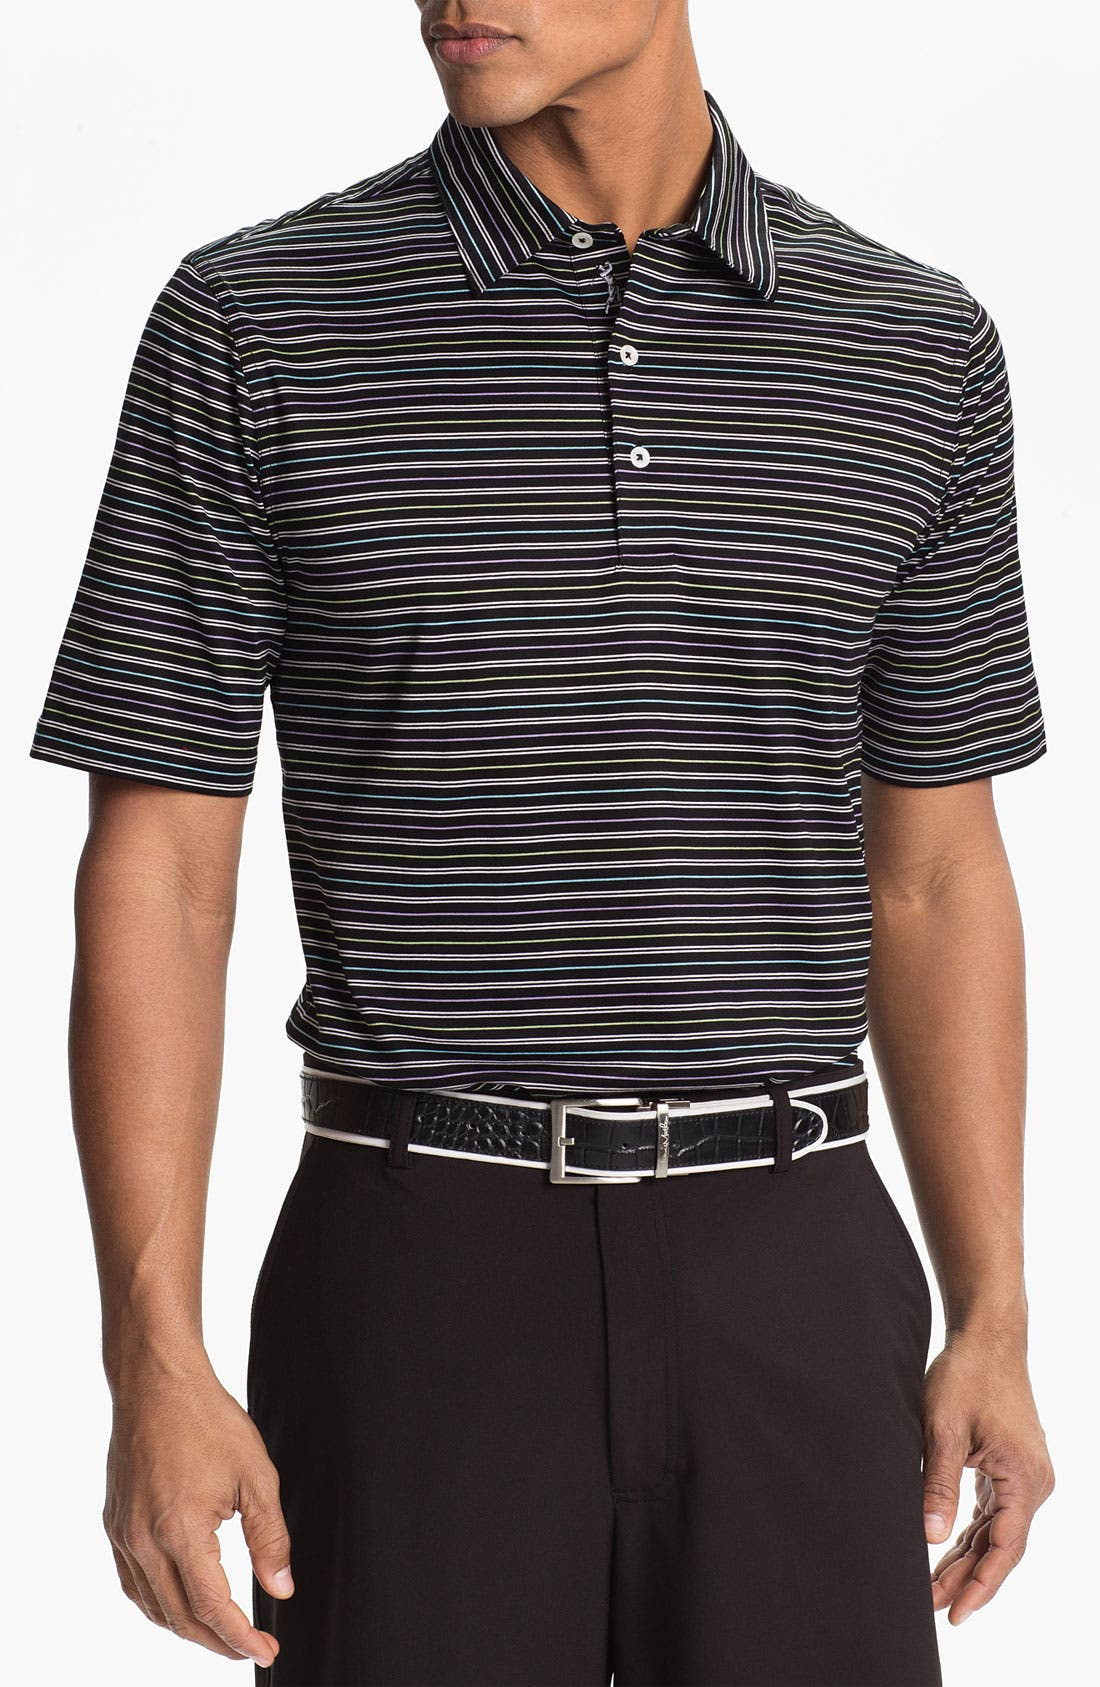 Alternate Image 1 Selected - Bobby Jones 'Tour' Stripe Polo